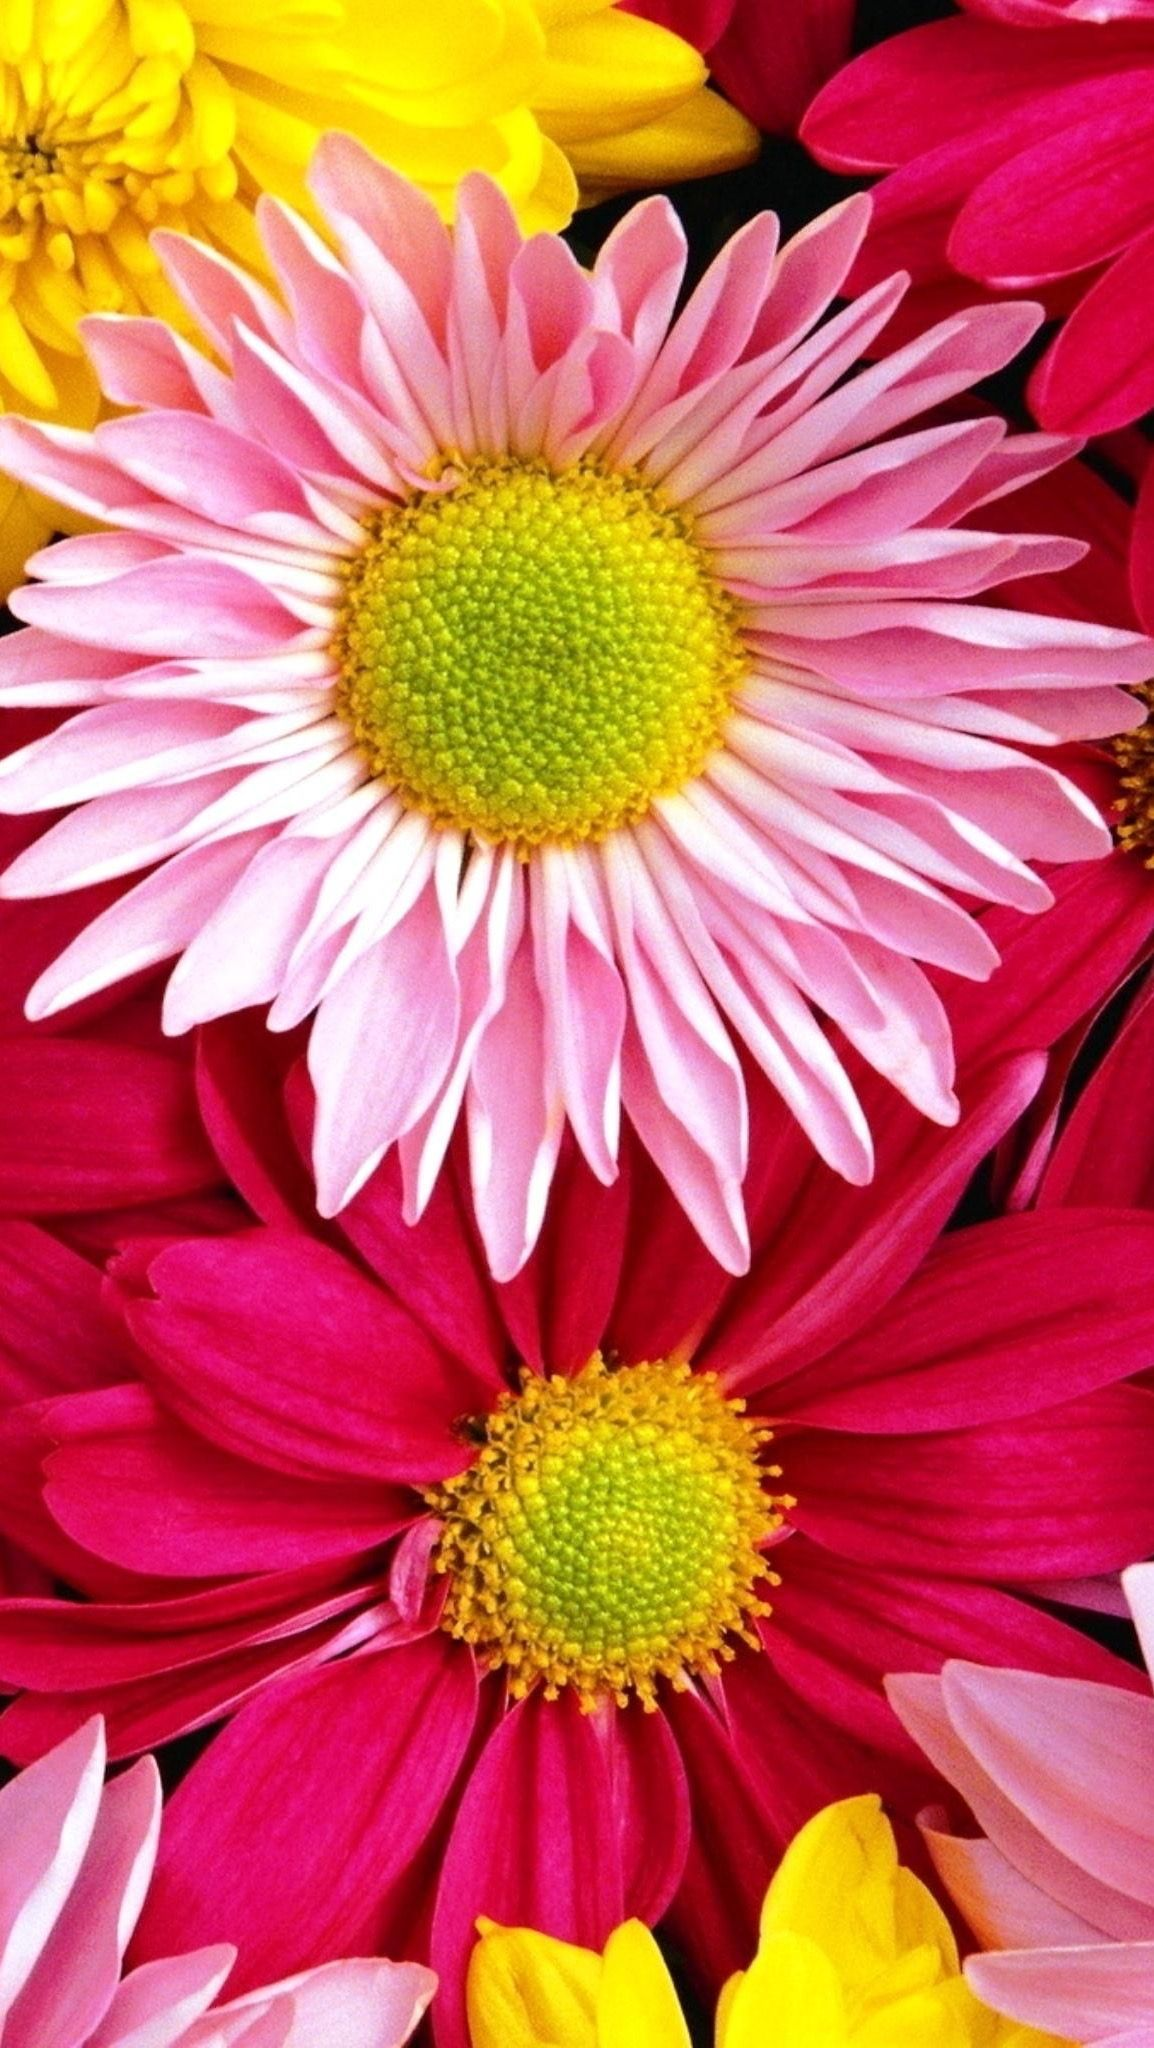 Iphone Wallpaper Flower Backgrounds Colorful Flowers Happy Flowers